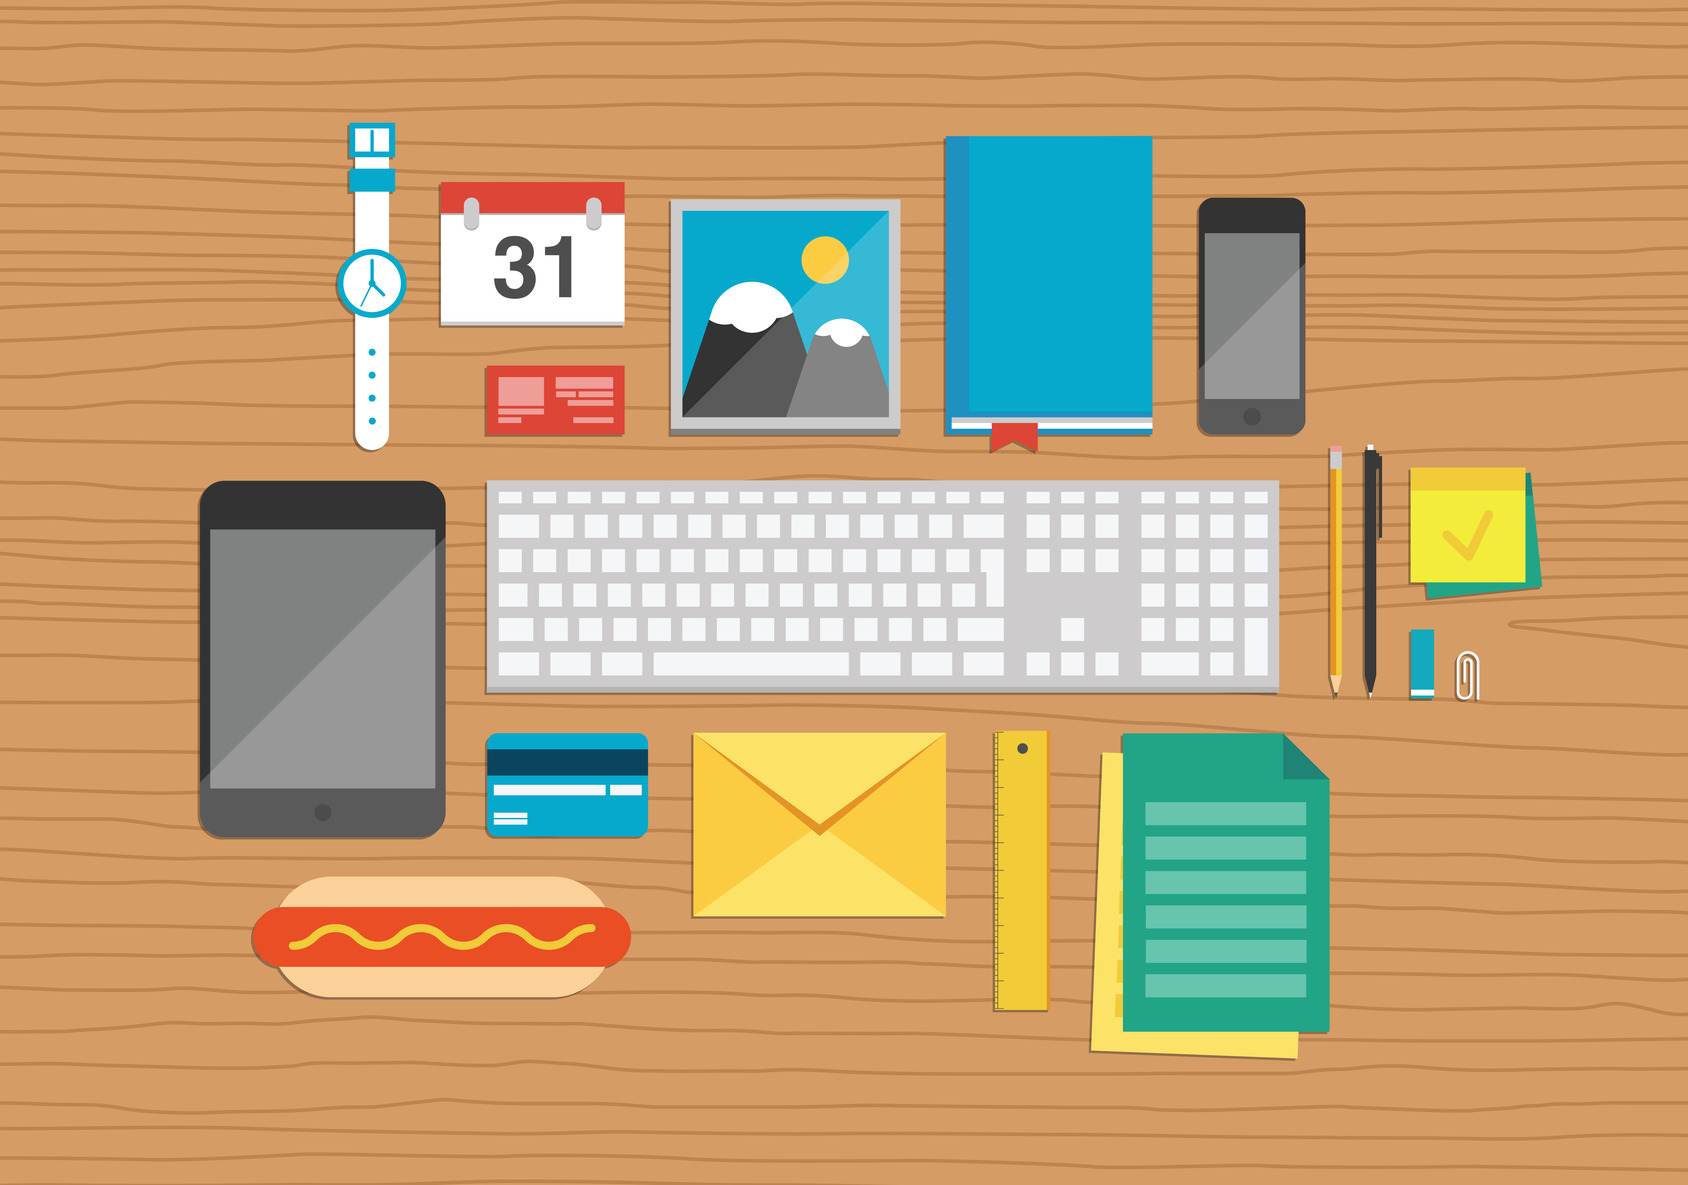 photodune-6171826-office-elements-on-desktop-illustration-m